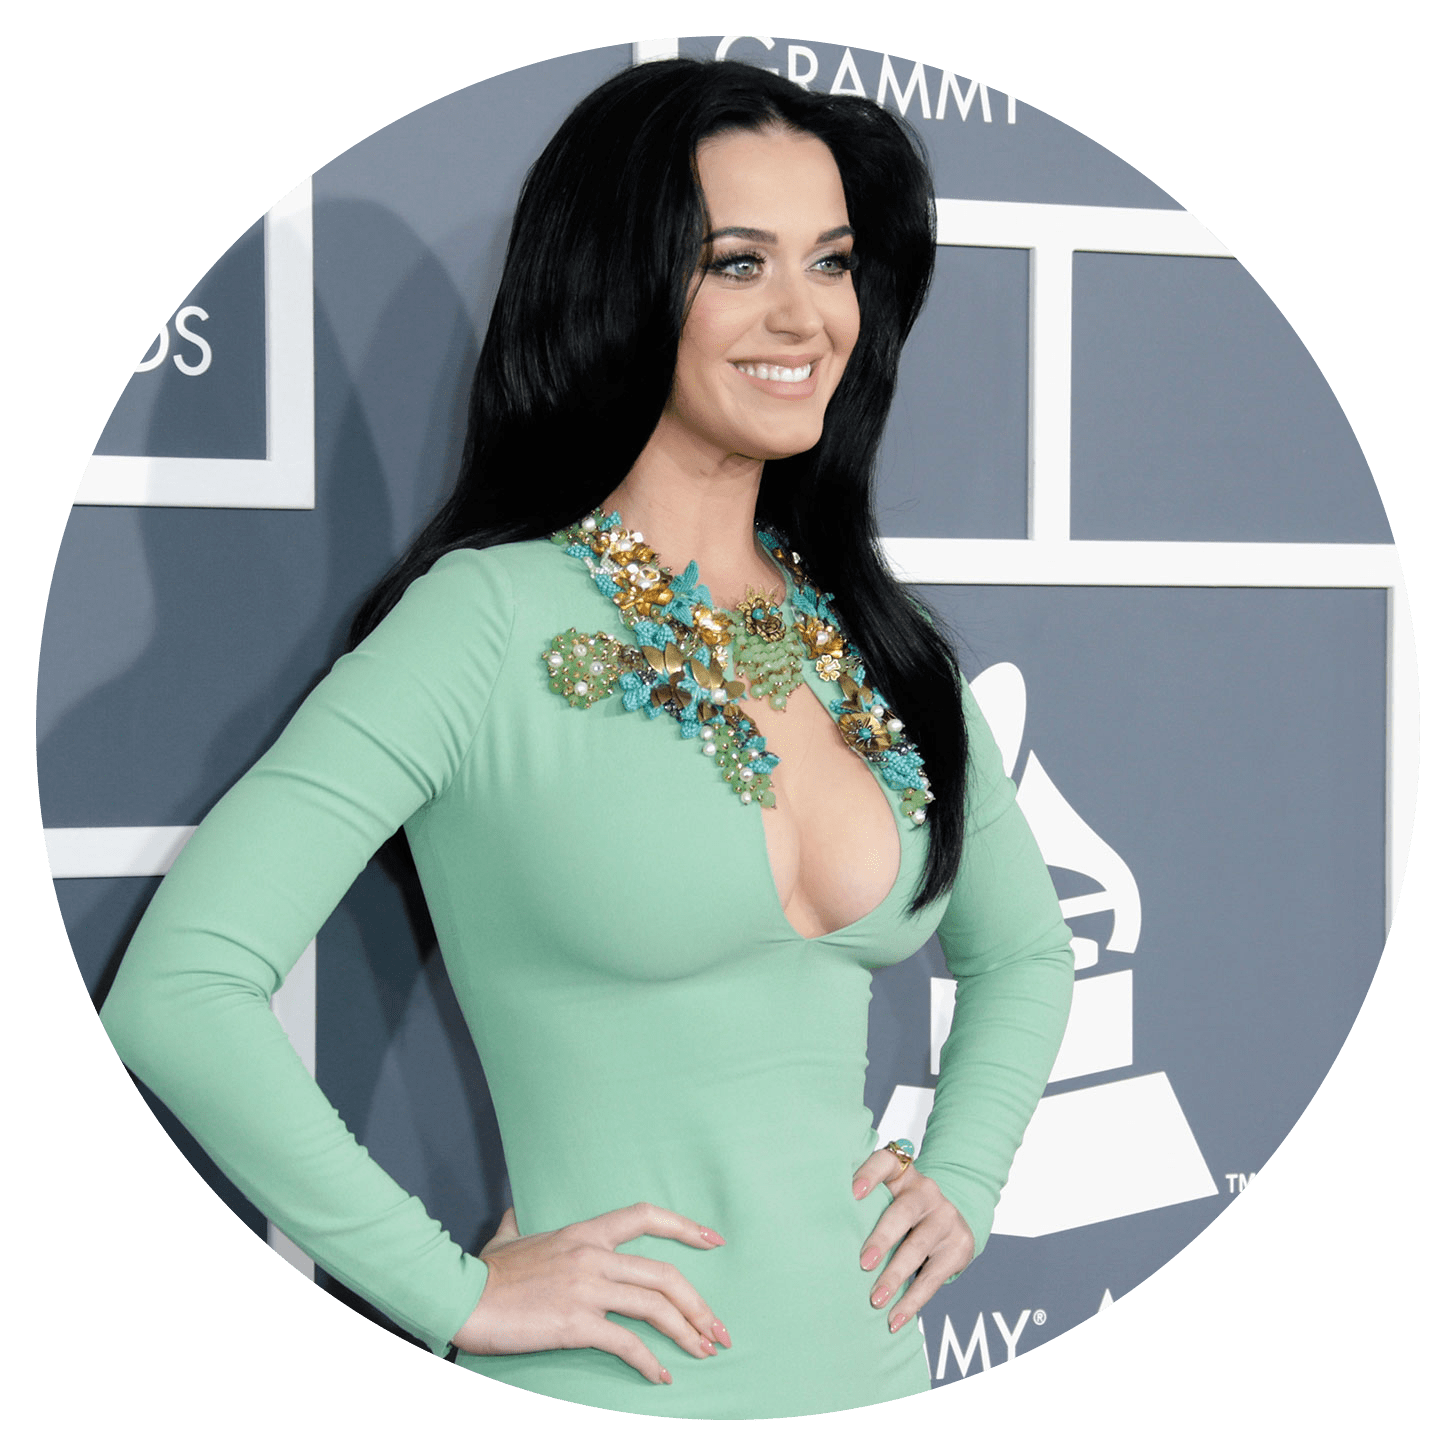 Katy-Perry-GQ-Interview-Highlights-2014-Video